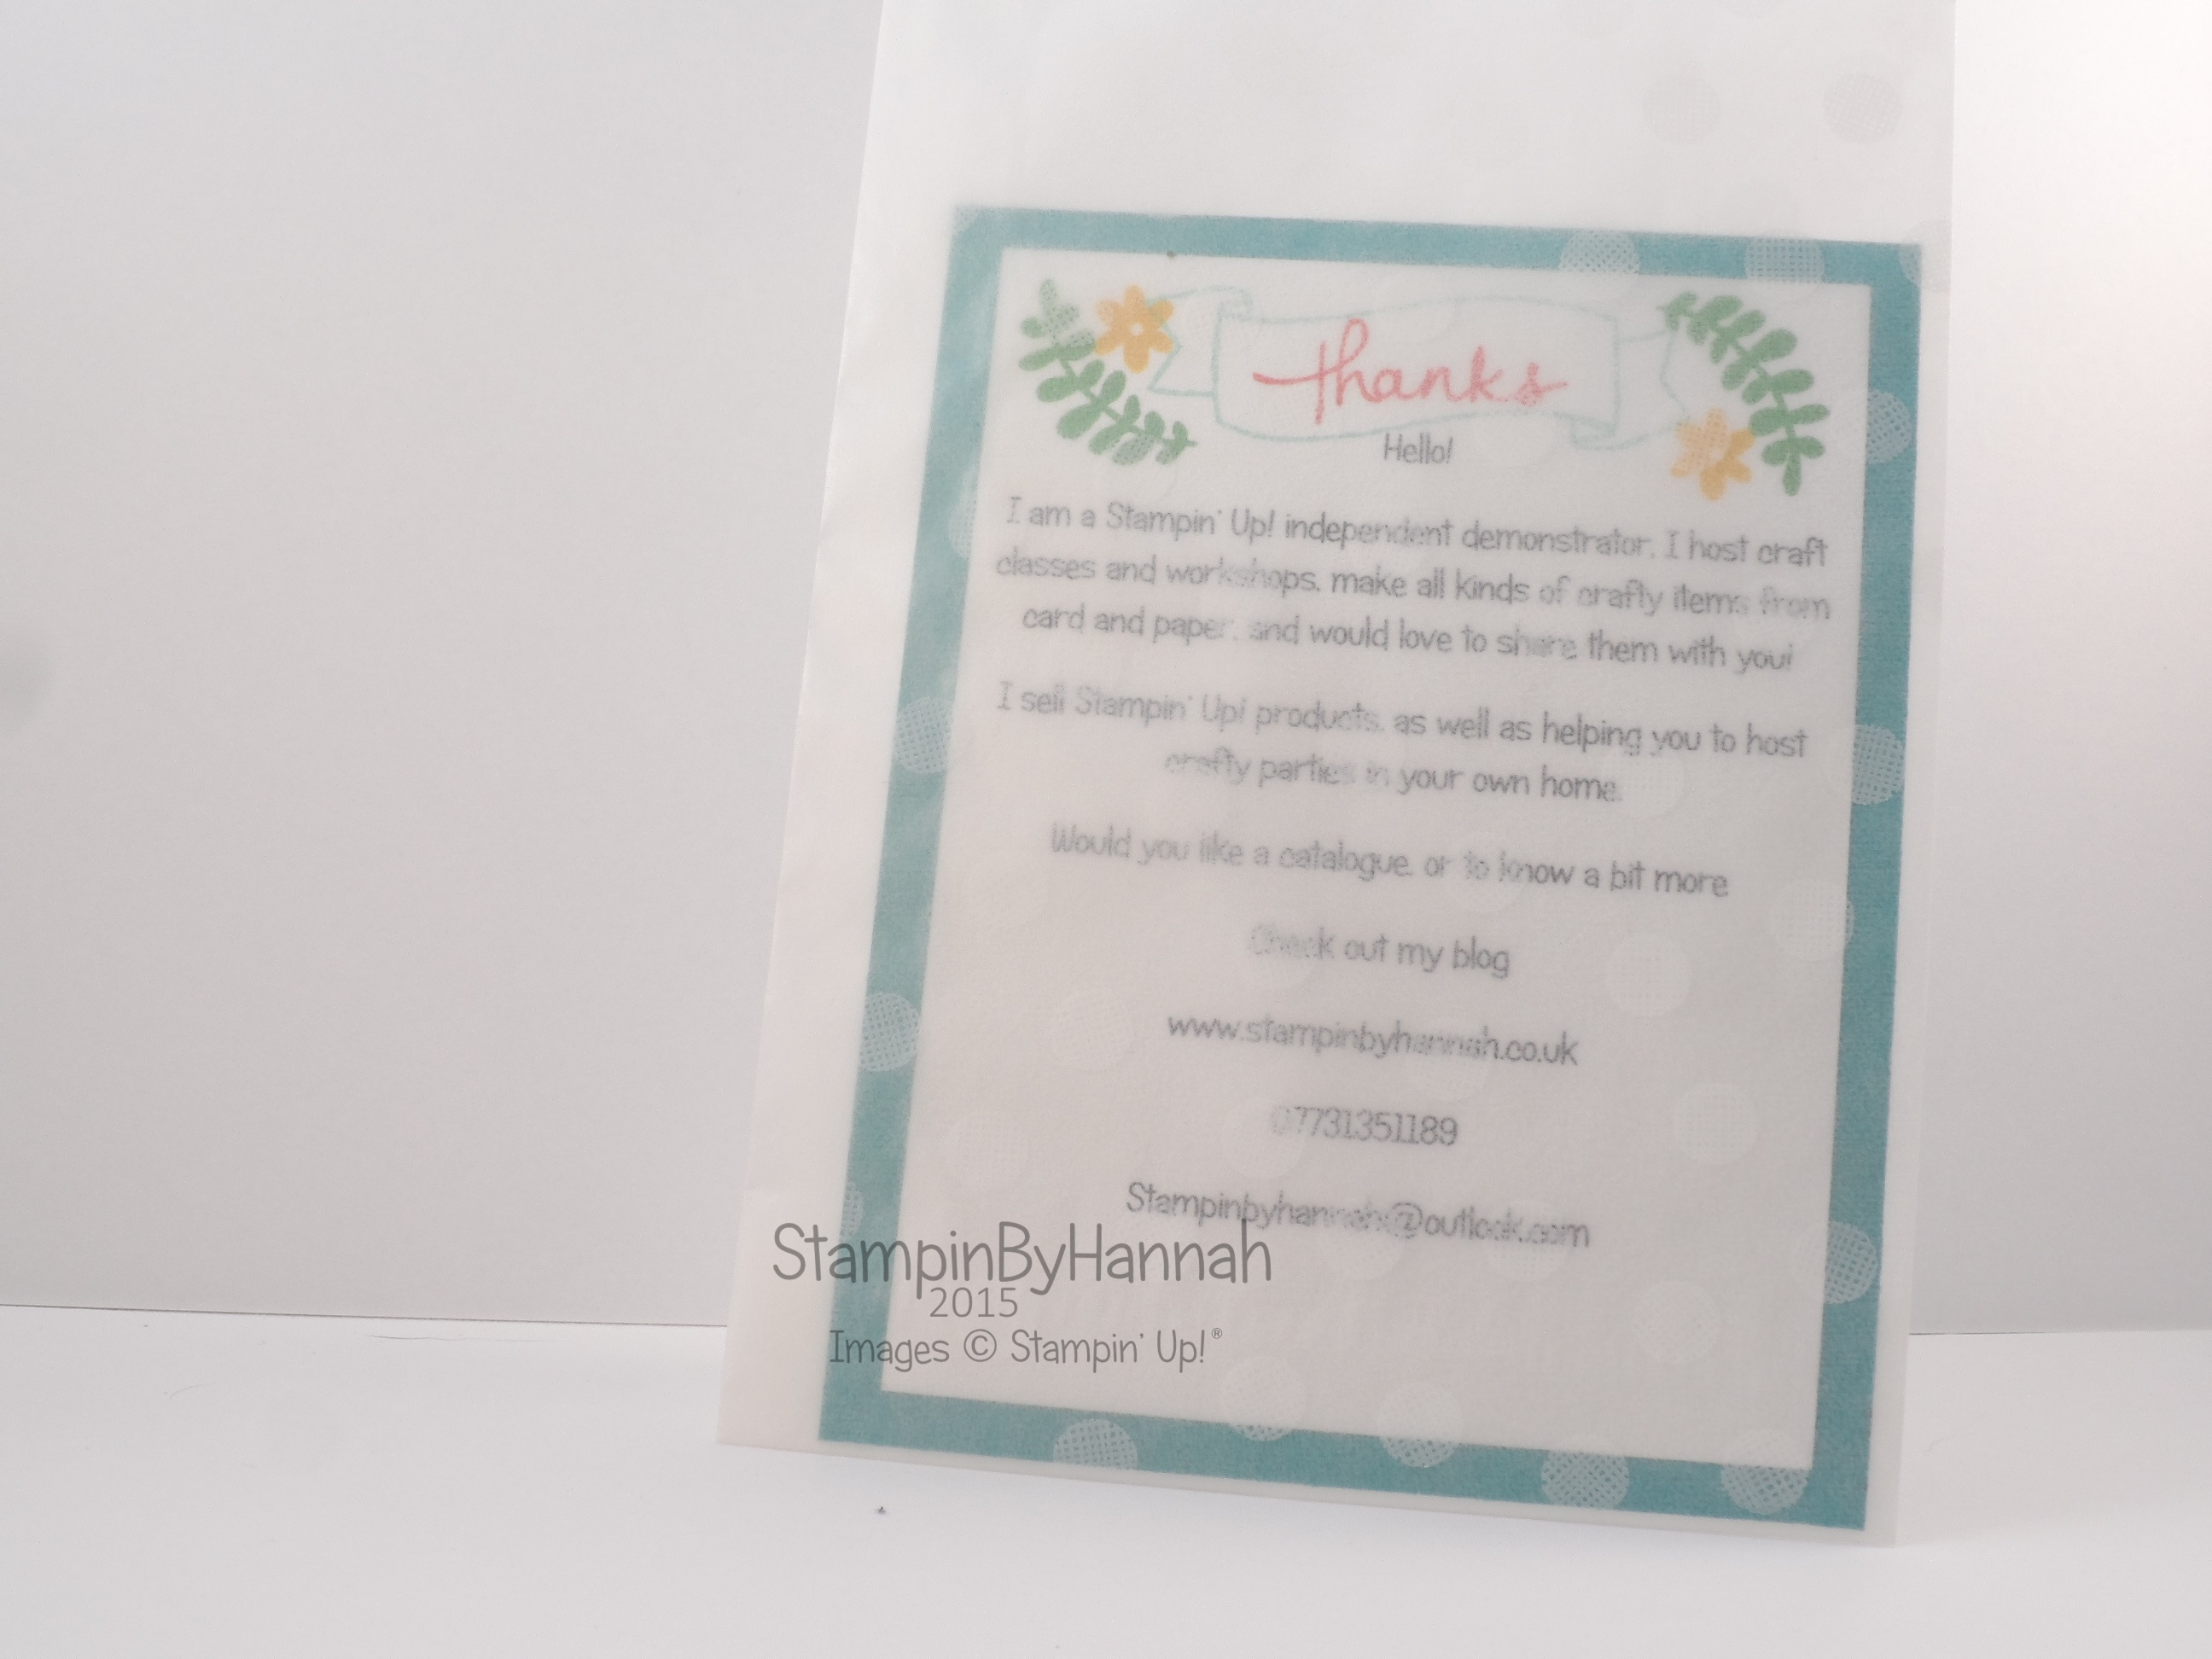 stampin up business cards images